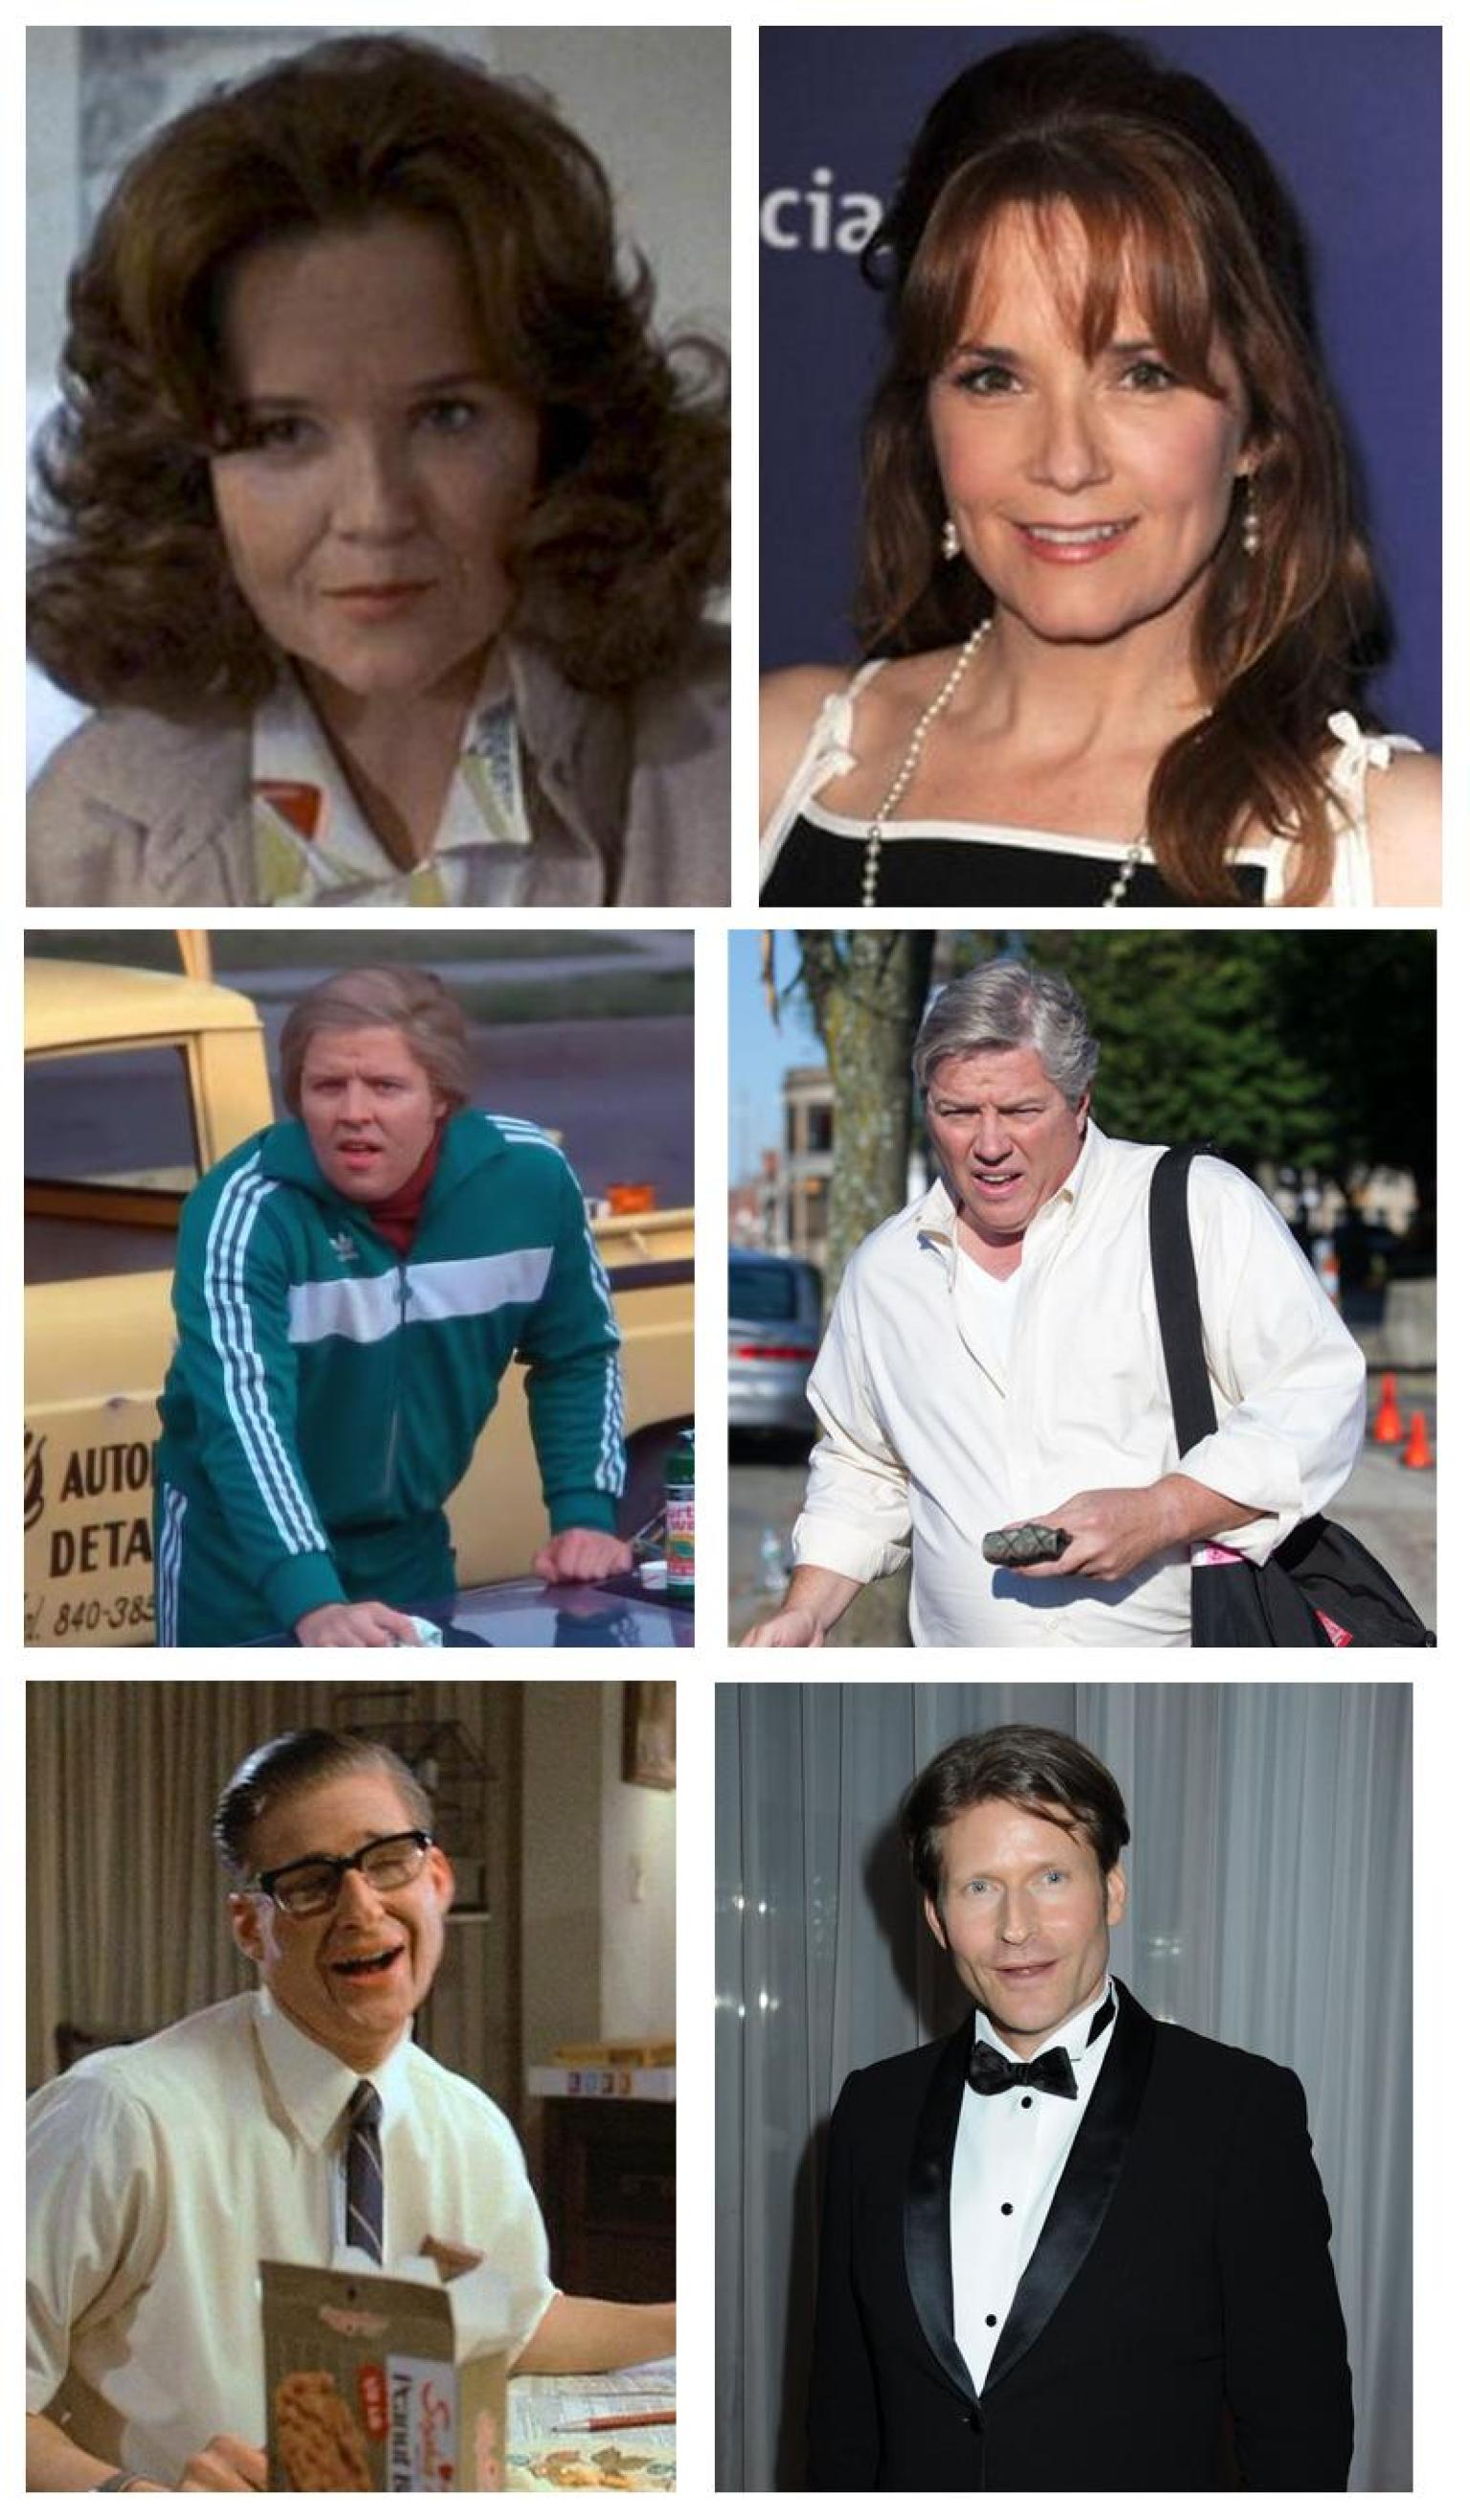 back to the future then now photos show how prophetic the movie back to the future then now photos show how prophetic the movie was the huffington post